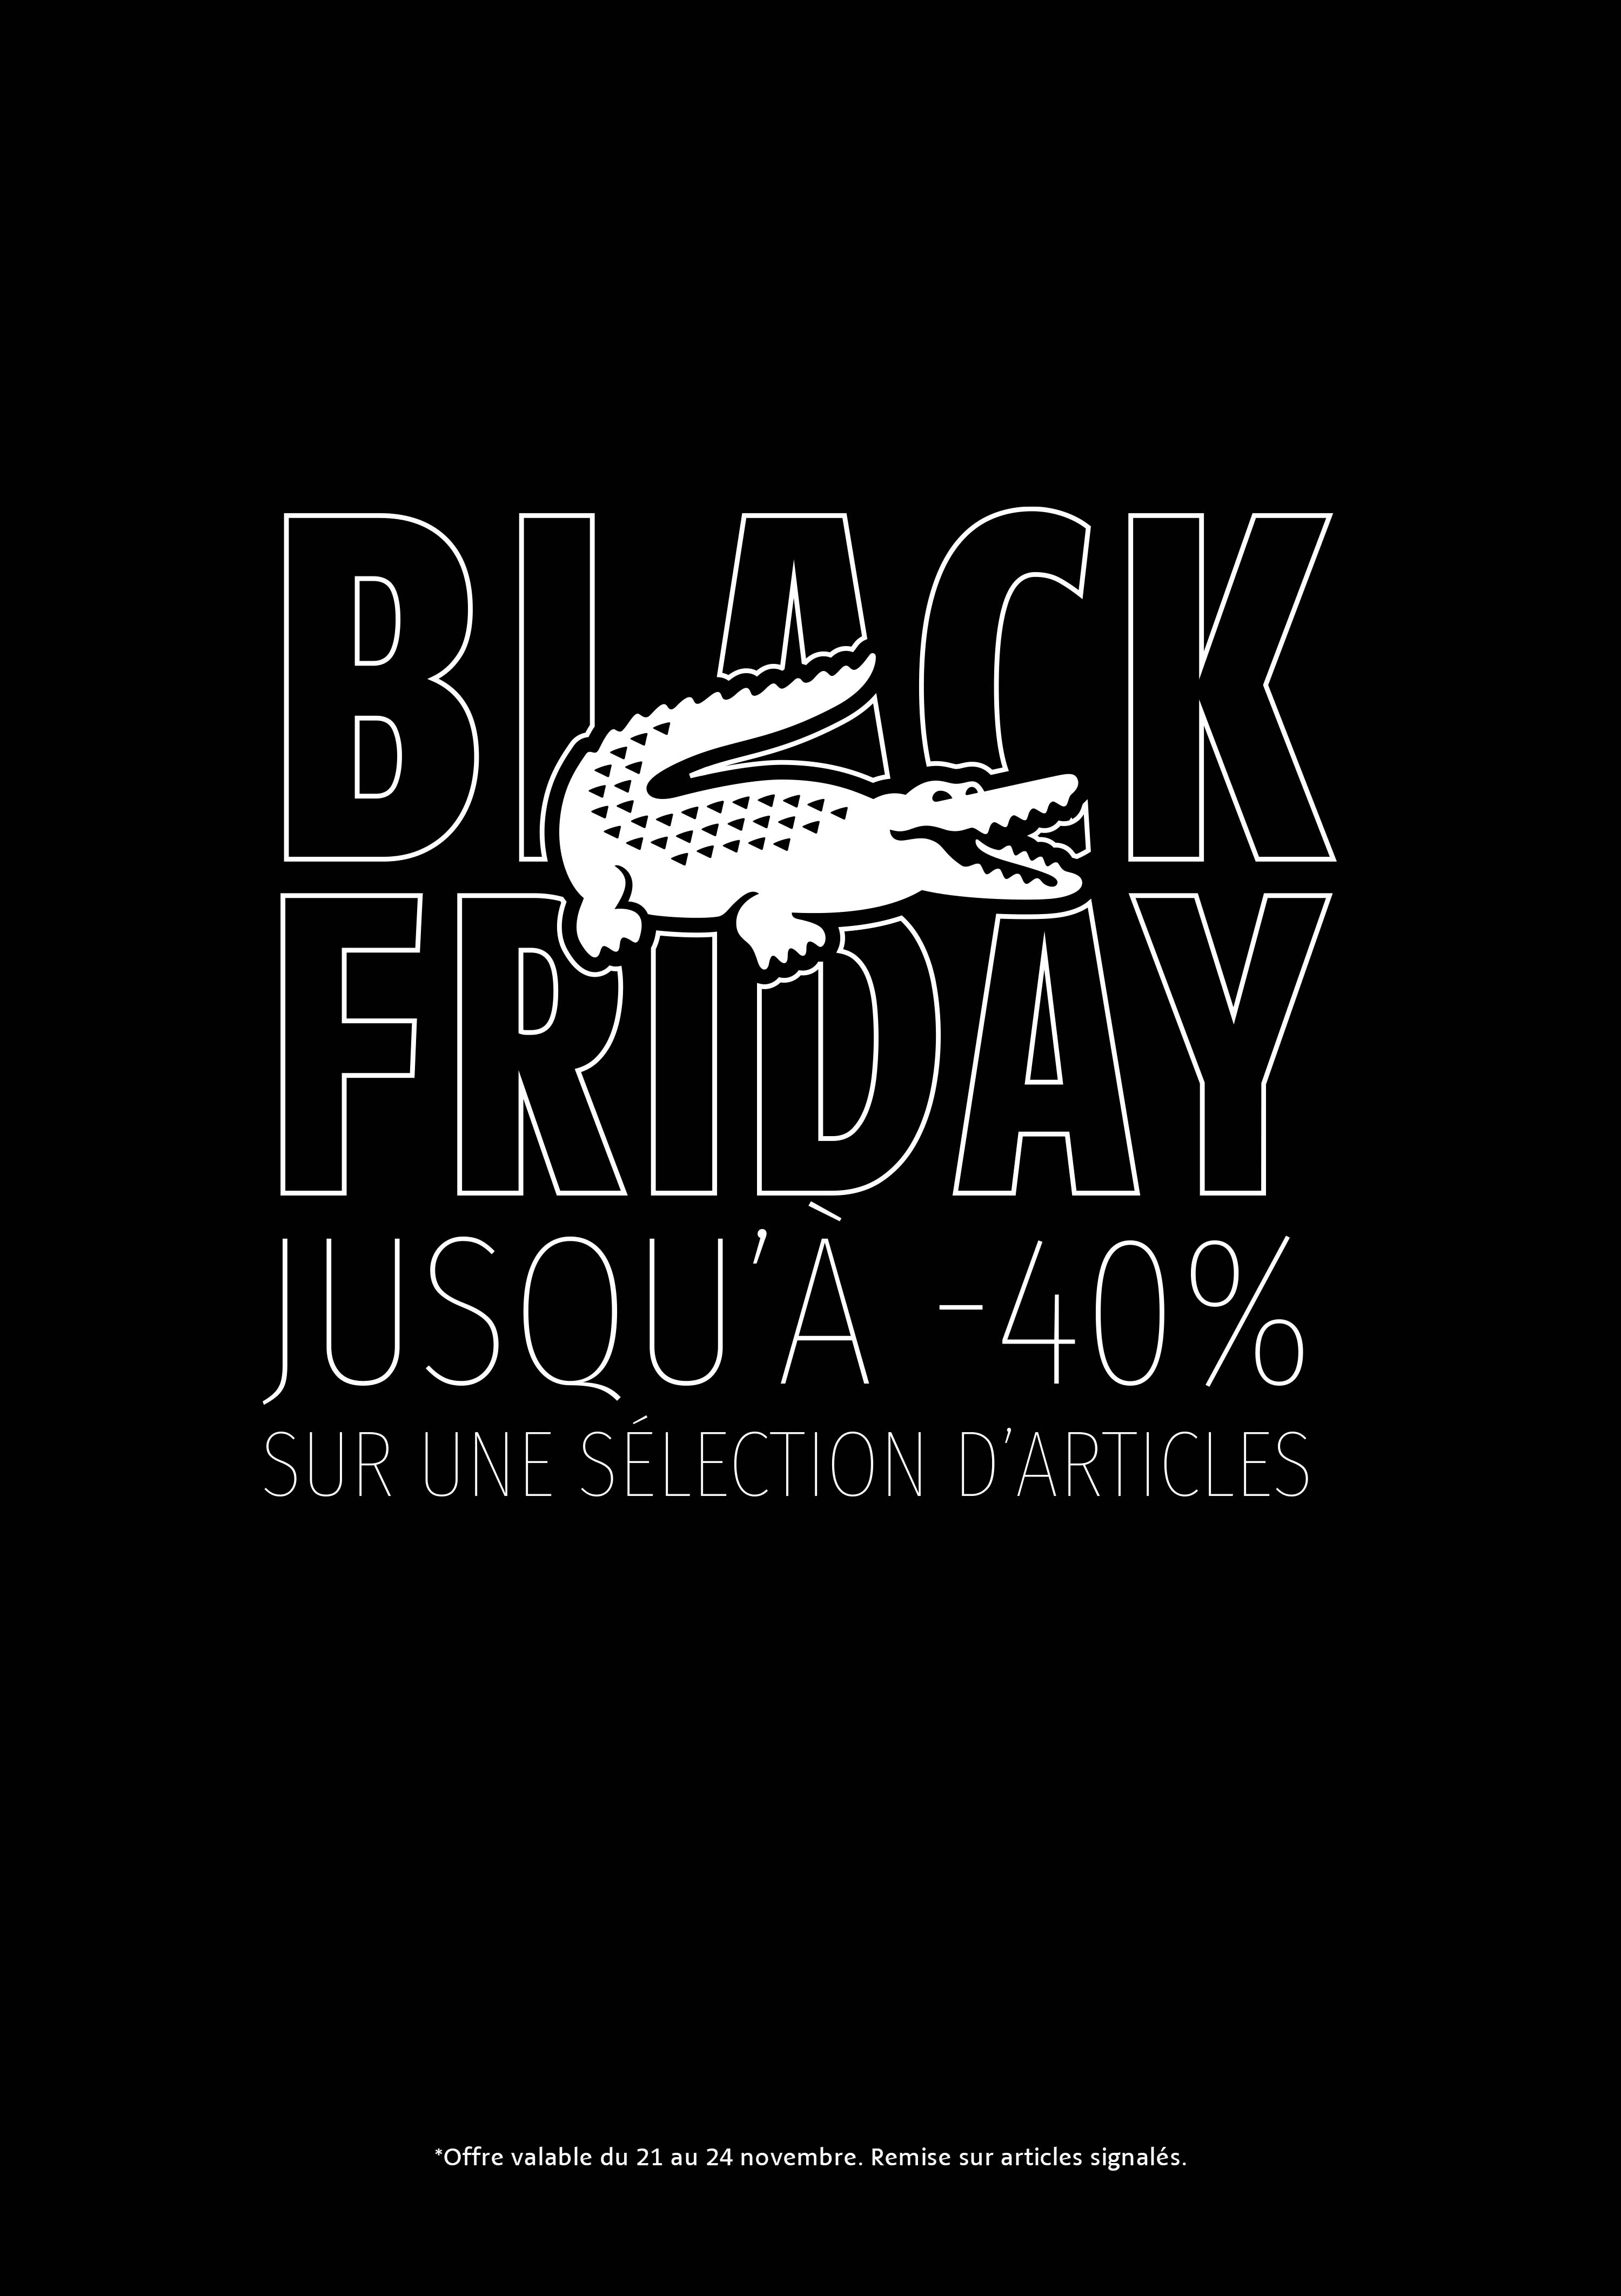 Black Friday chez lacoste